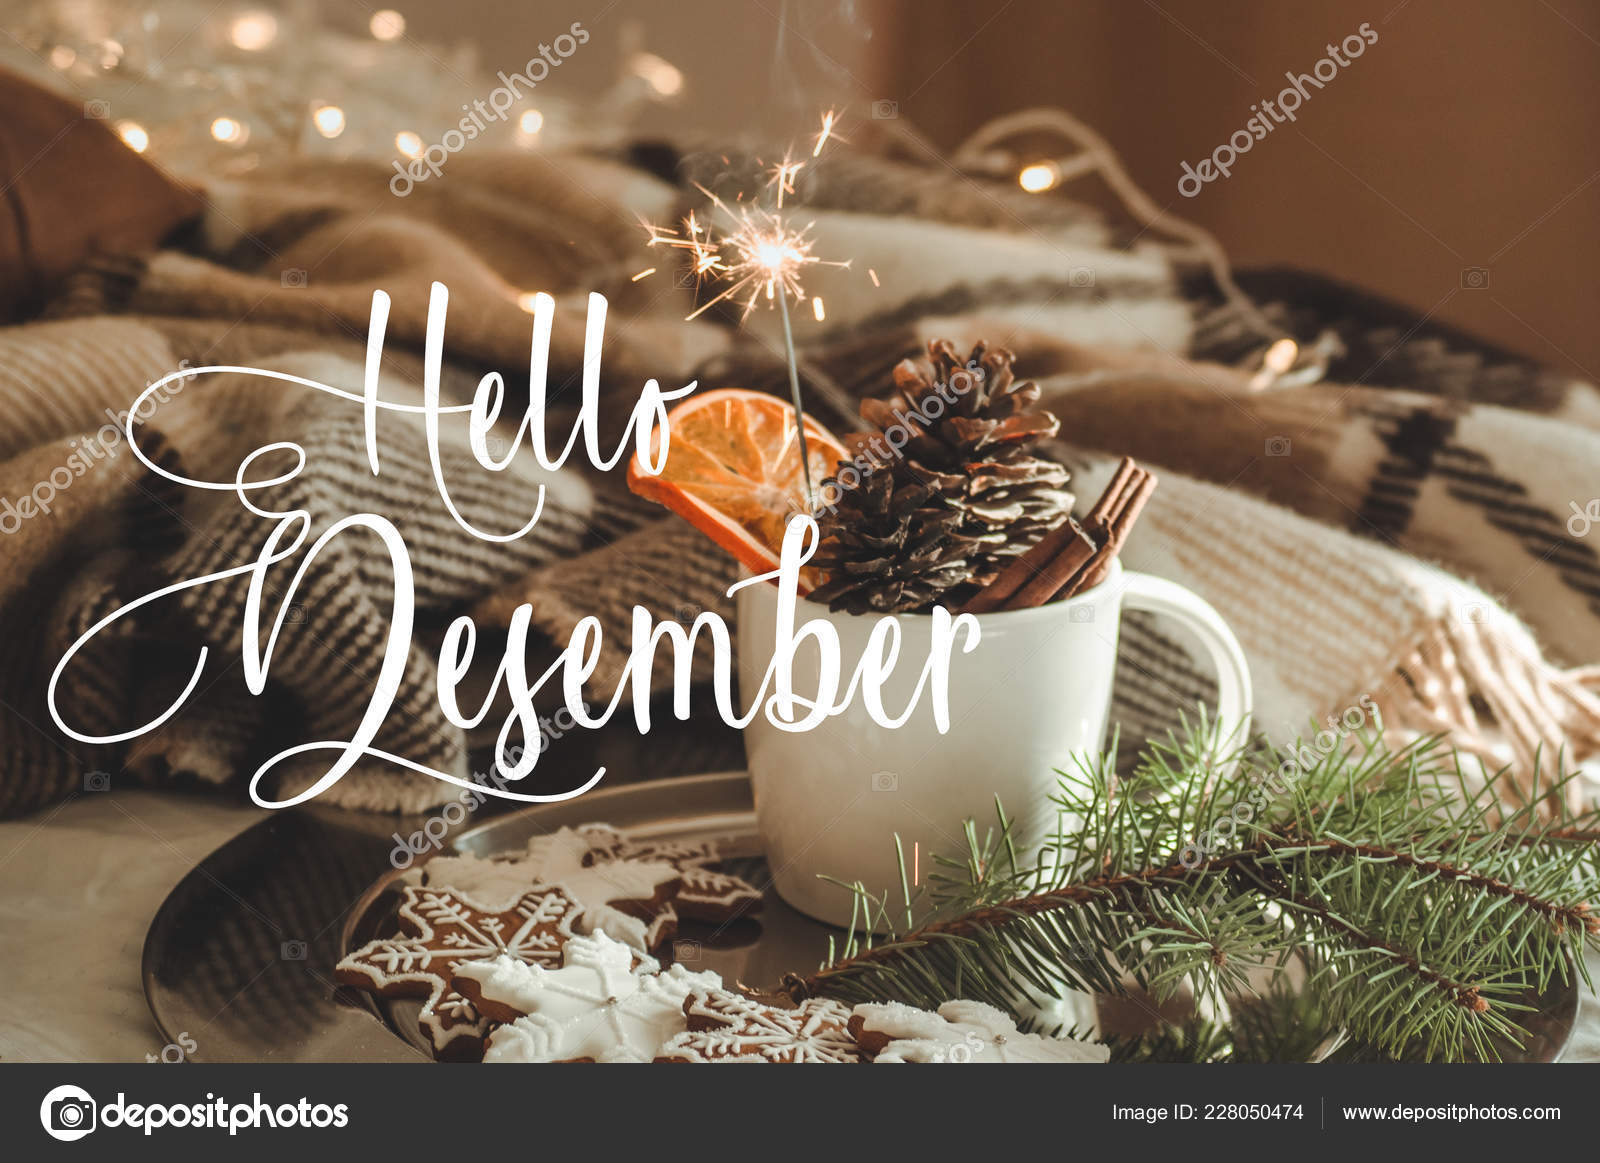 depositphotos_228050474-stock-photo-hello-december-cup-with-cones.jpg